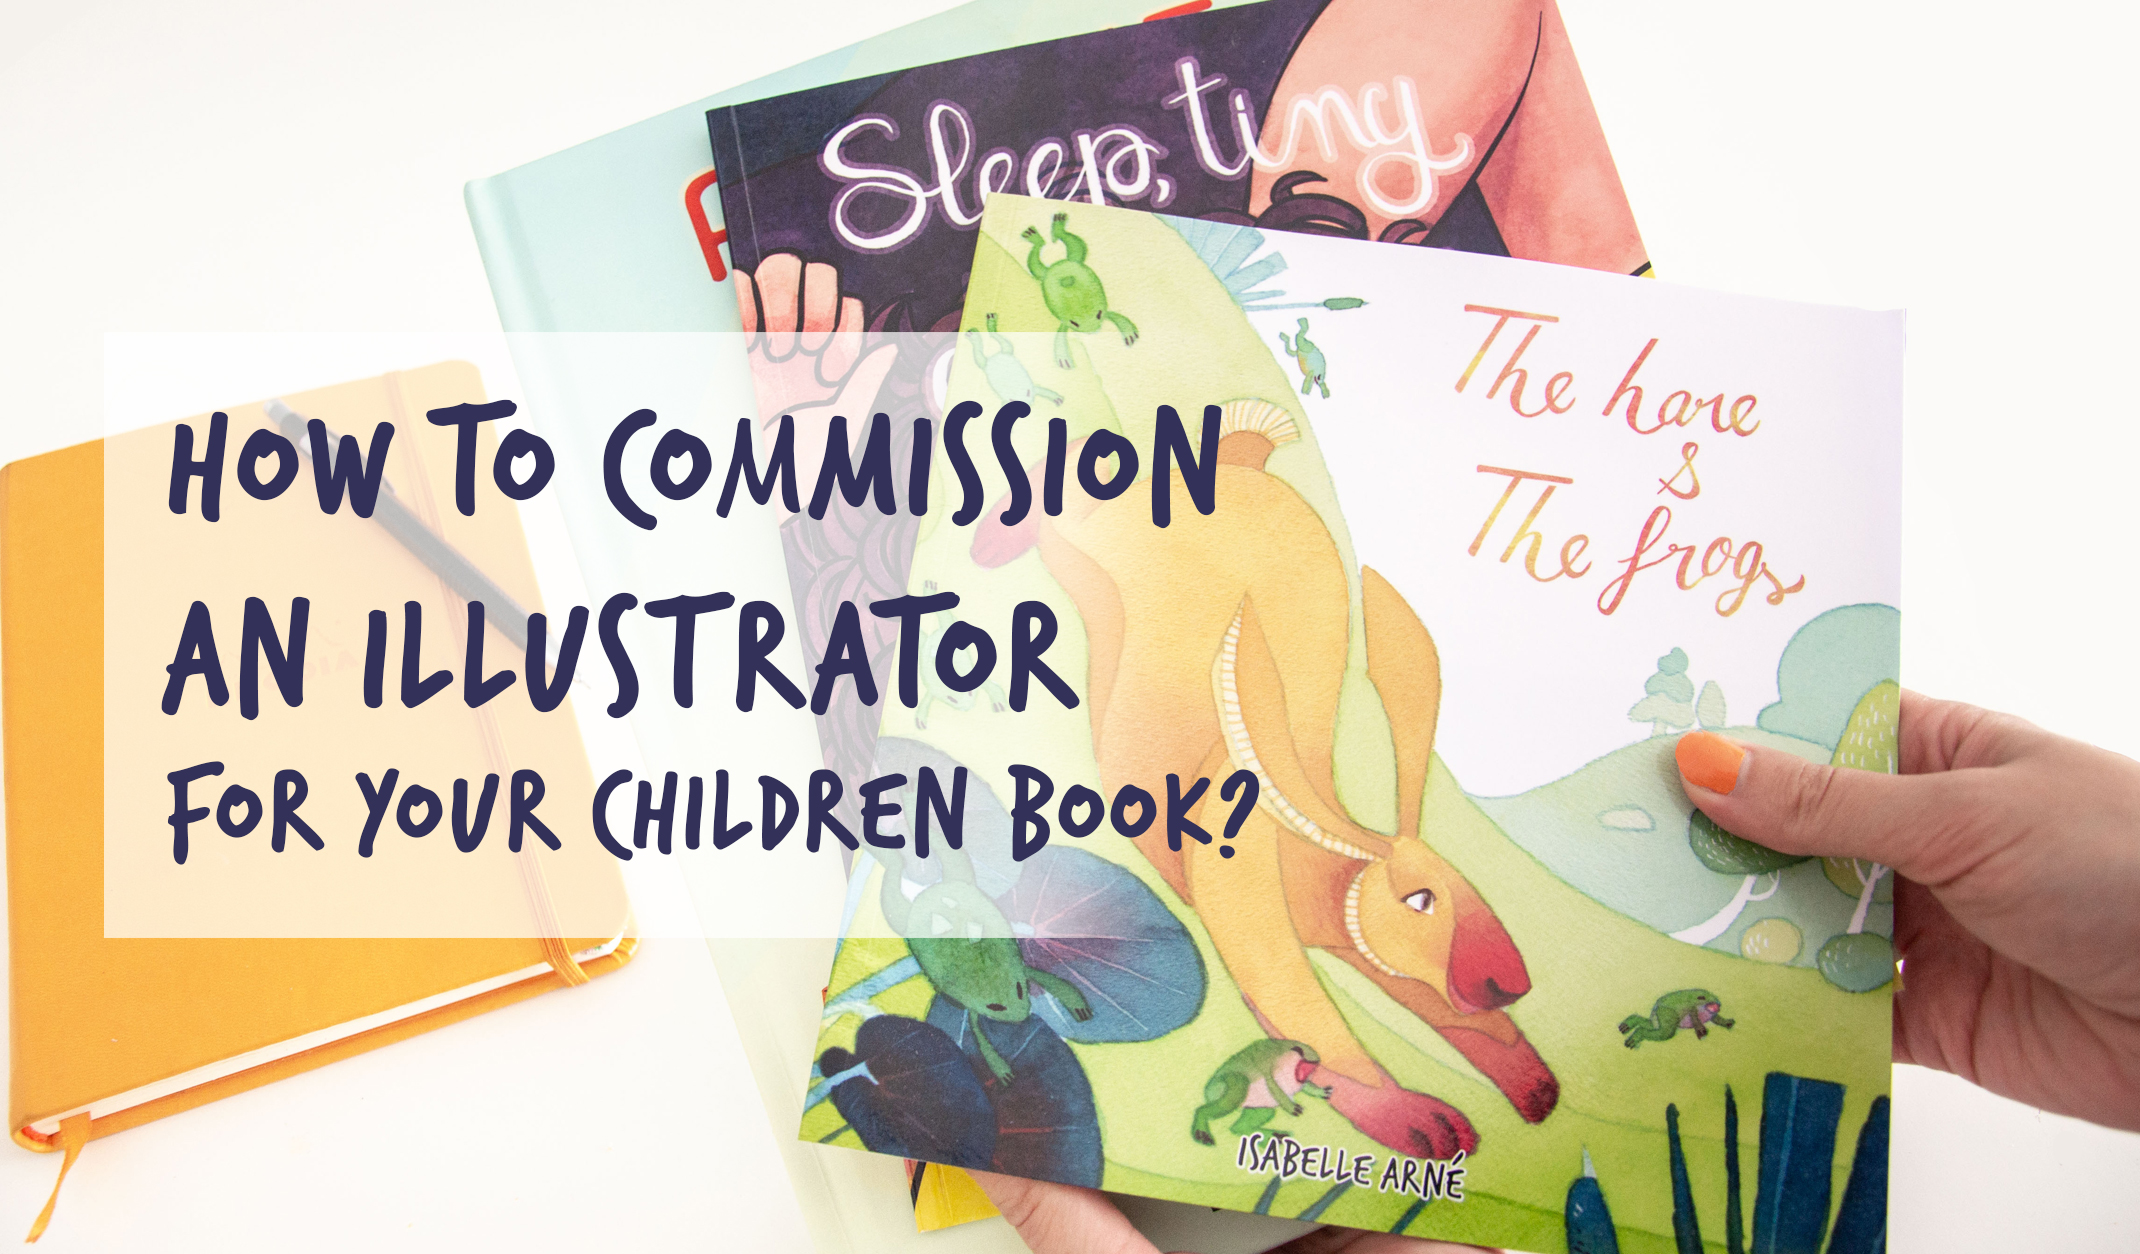 how to commission an illustrator for your children book?